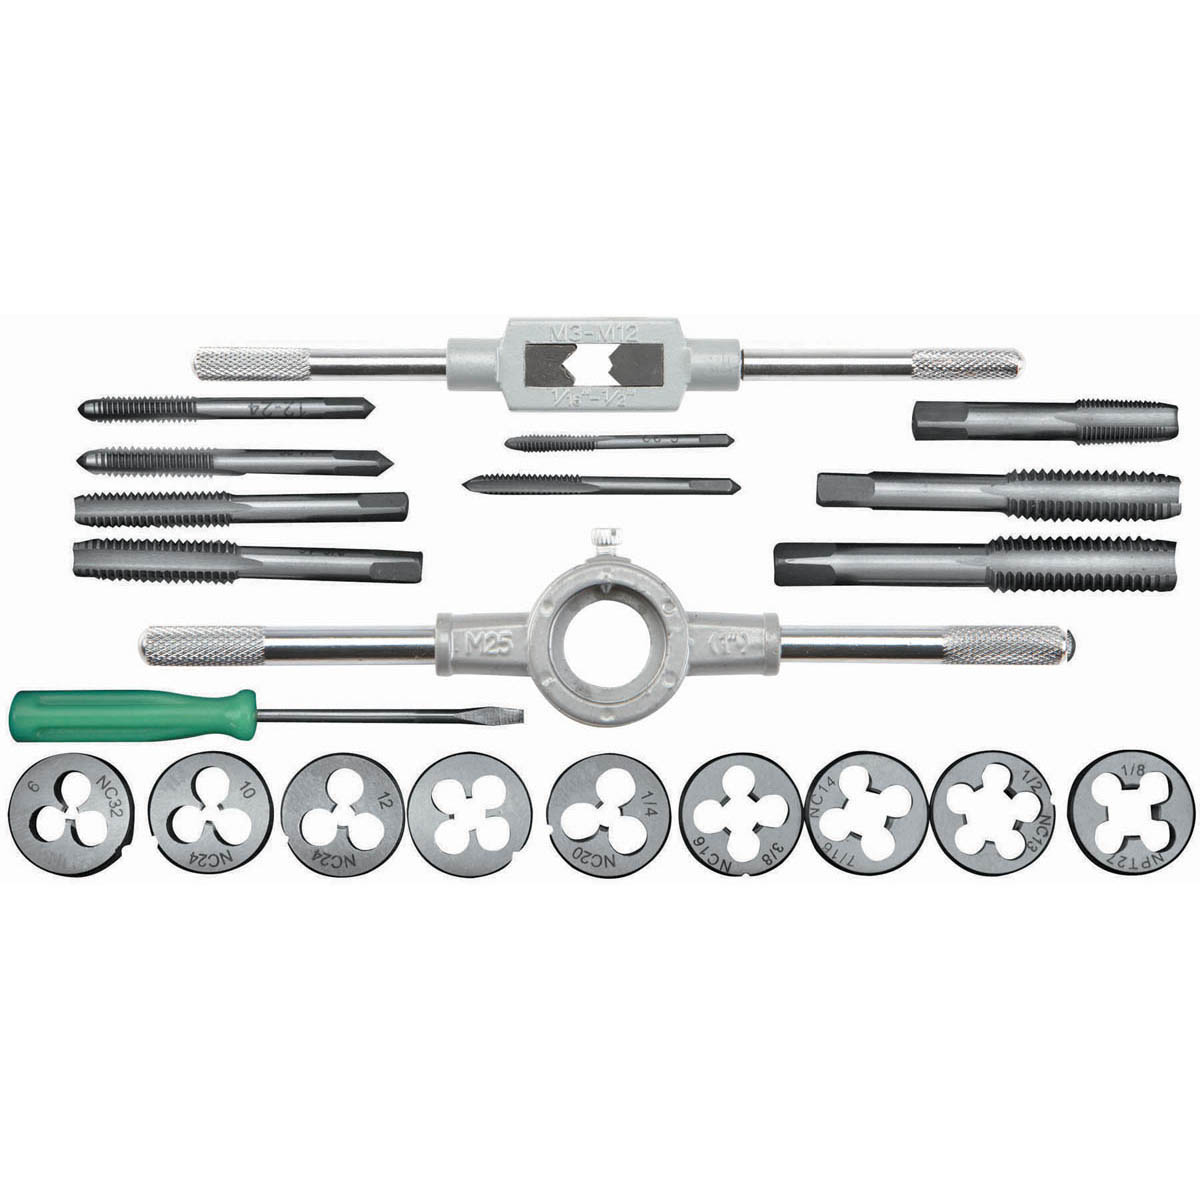 21 Pc Carbon Steel SAE Tap and Die Set